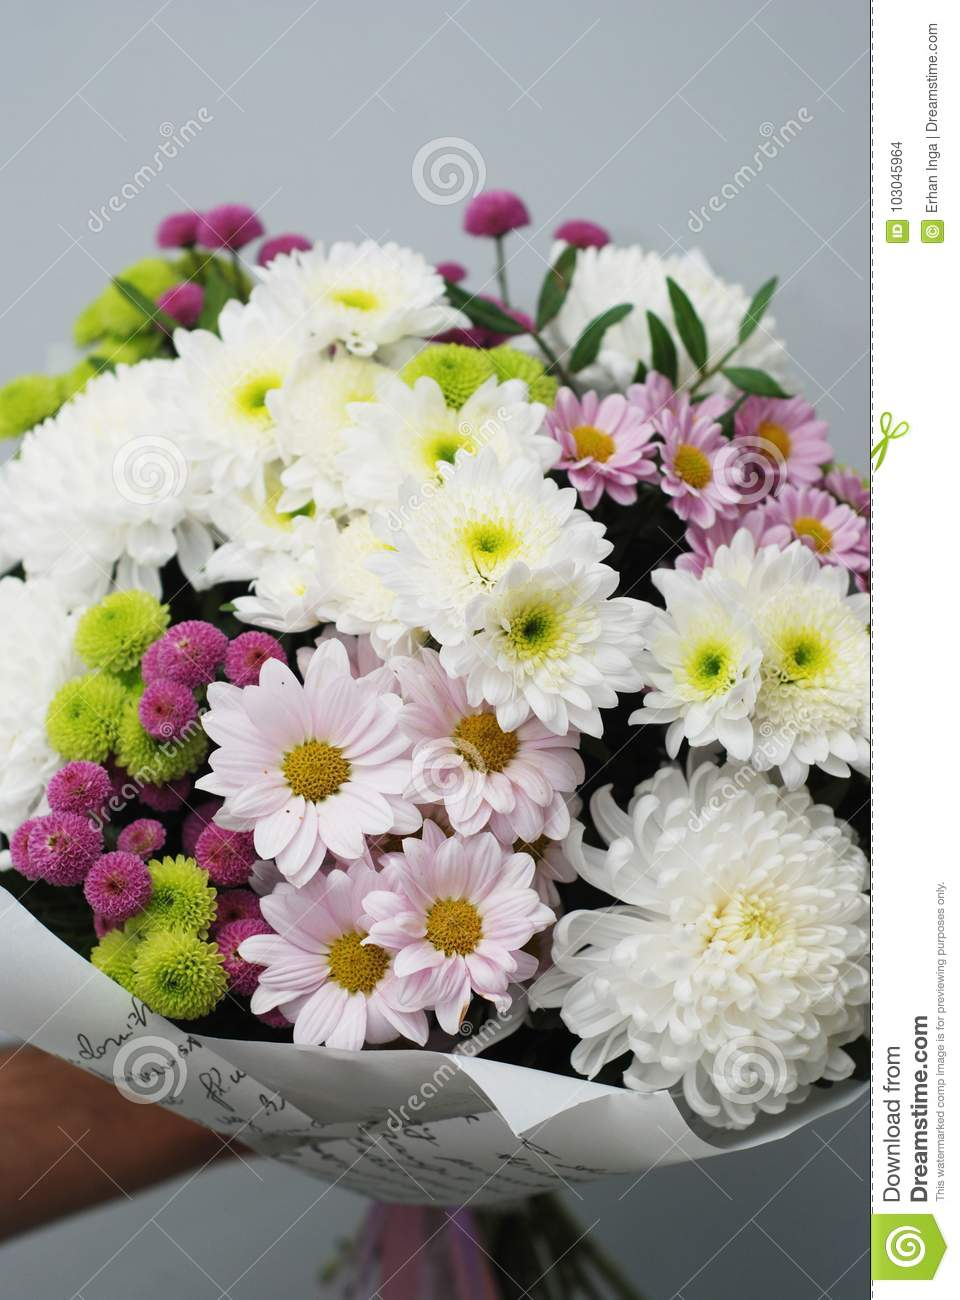 Beautiful Bouquet Of Autumn Flowers On White Crisanthemum White And